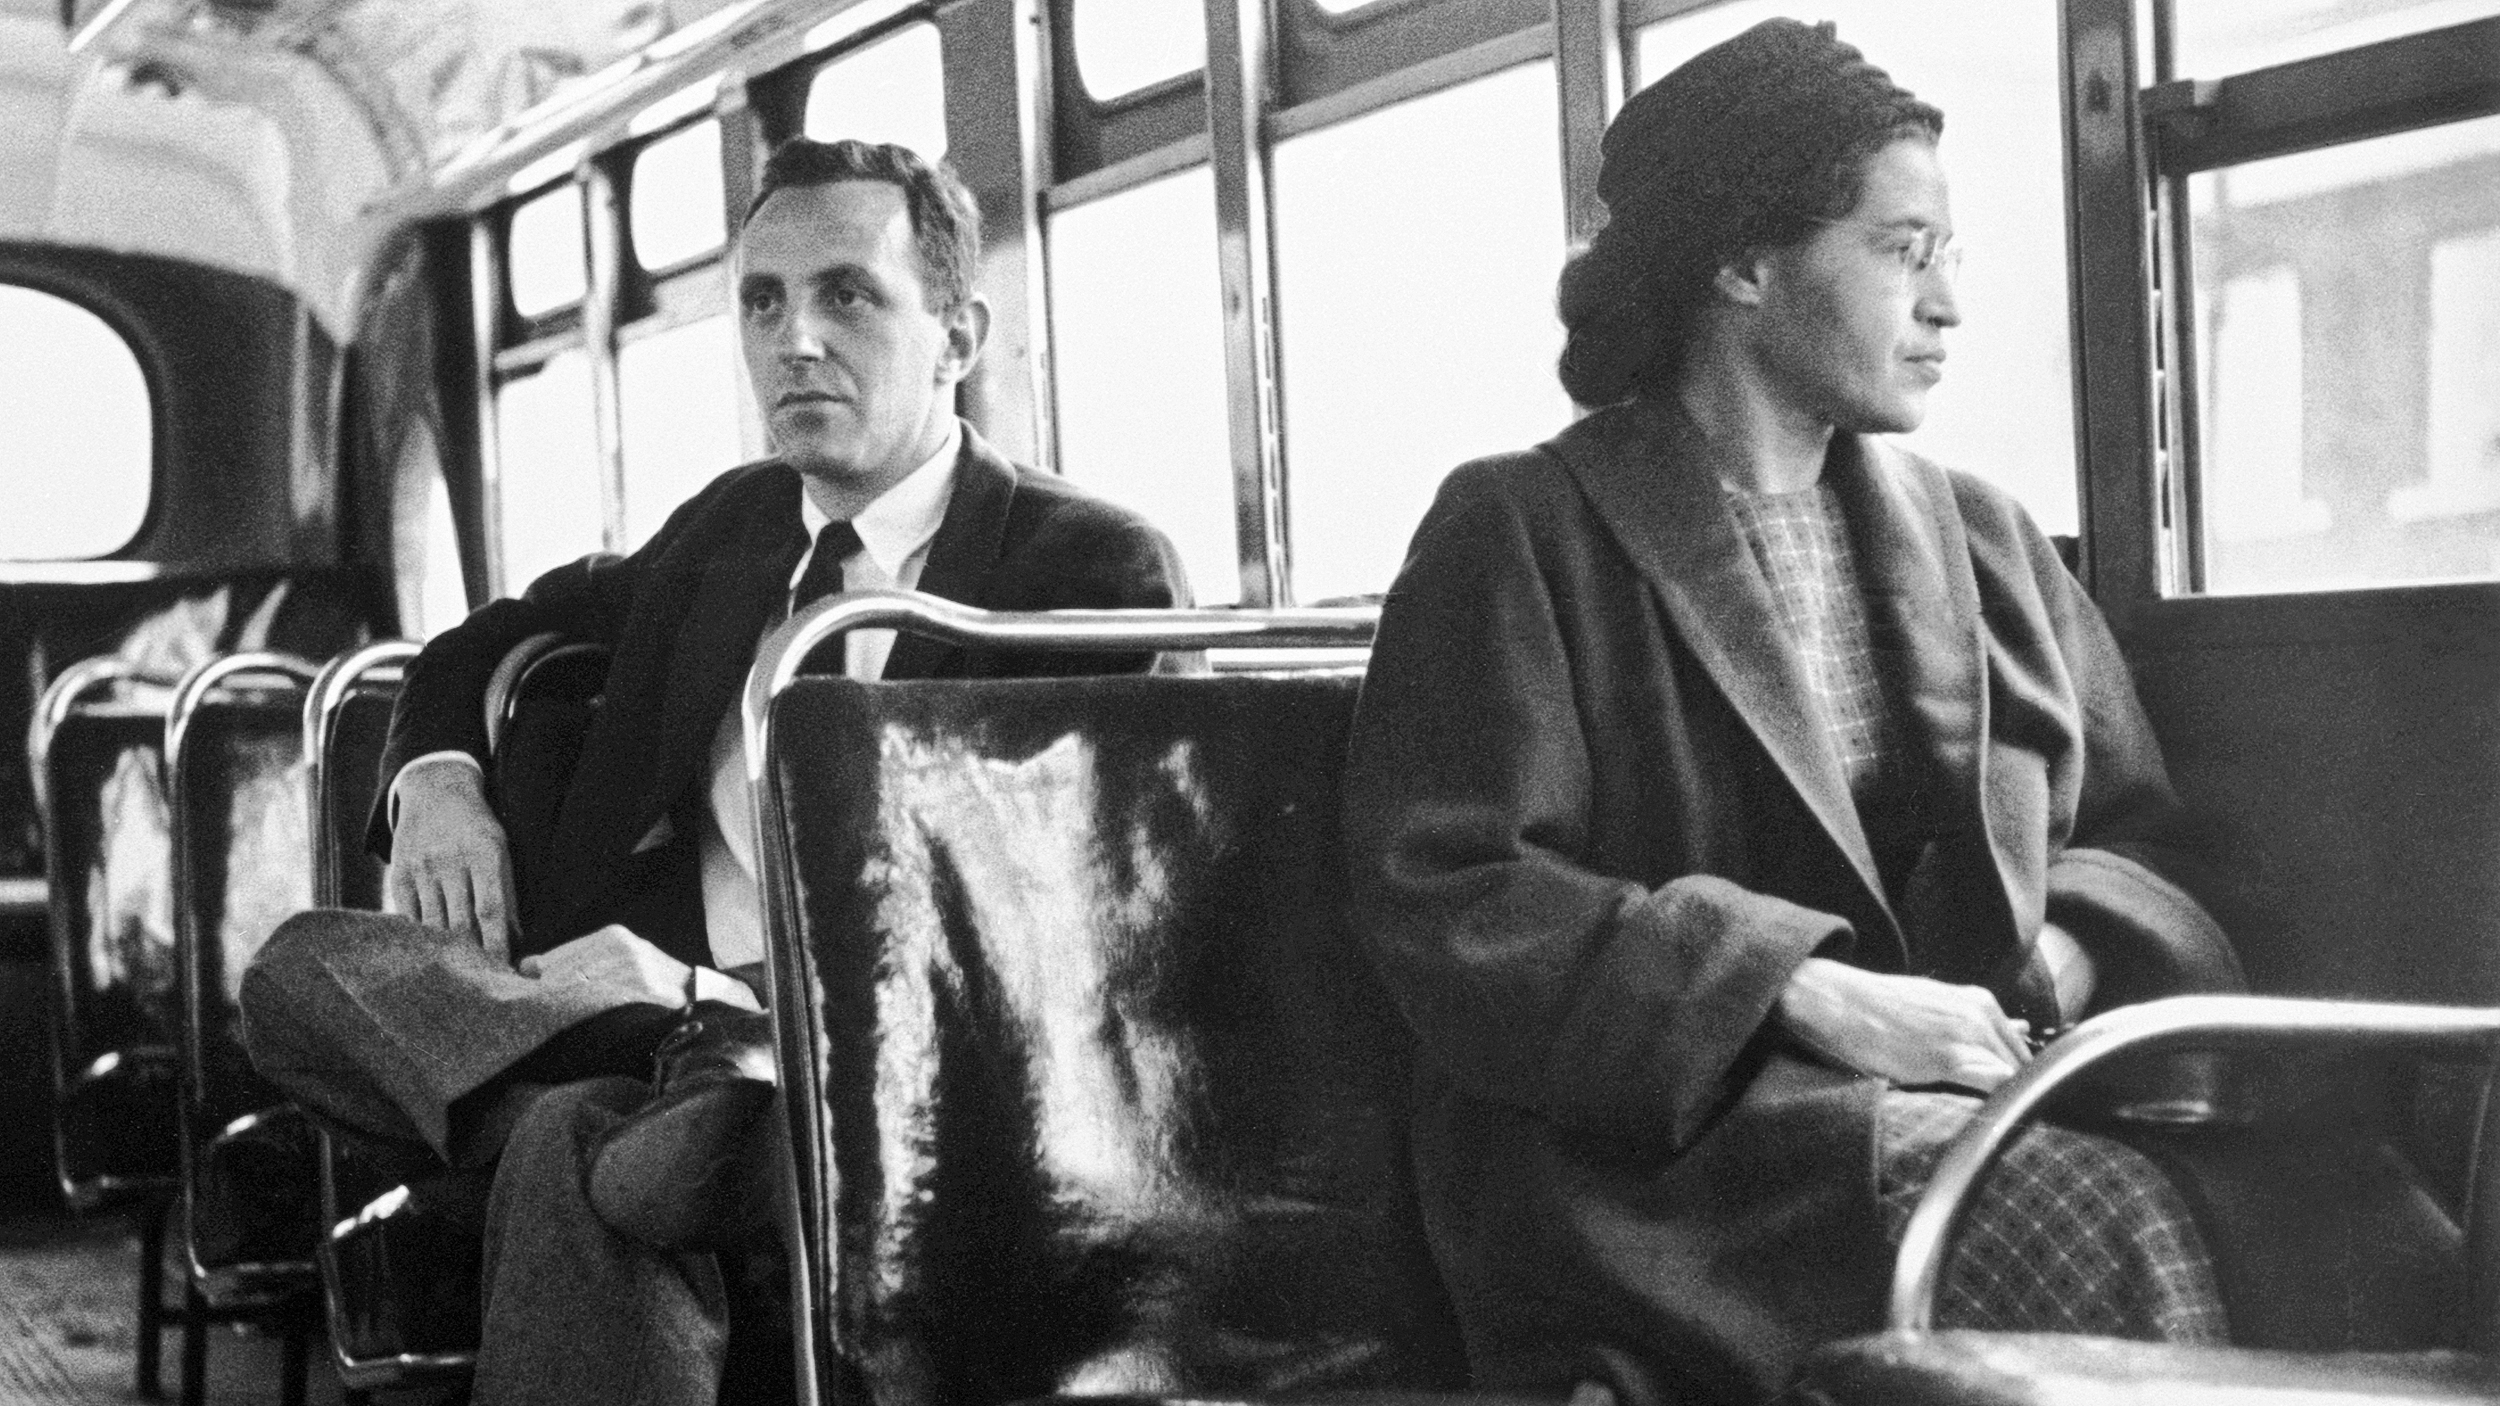 medium resolution of on this day rosa parks refused to give up her bus seat igniting the civil rights movement